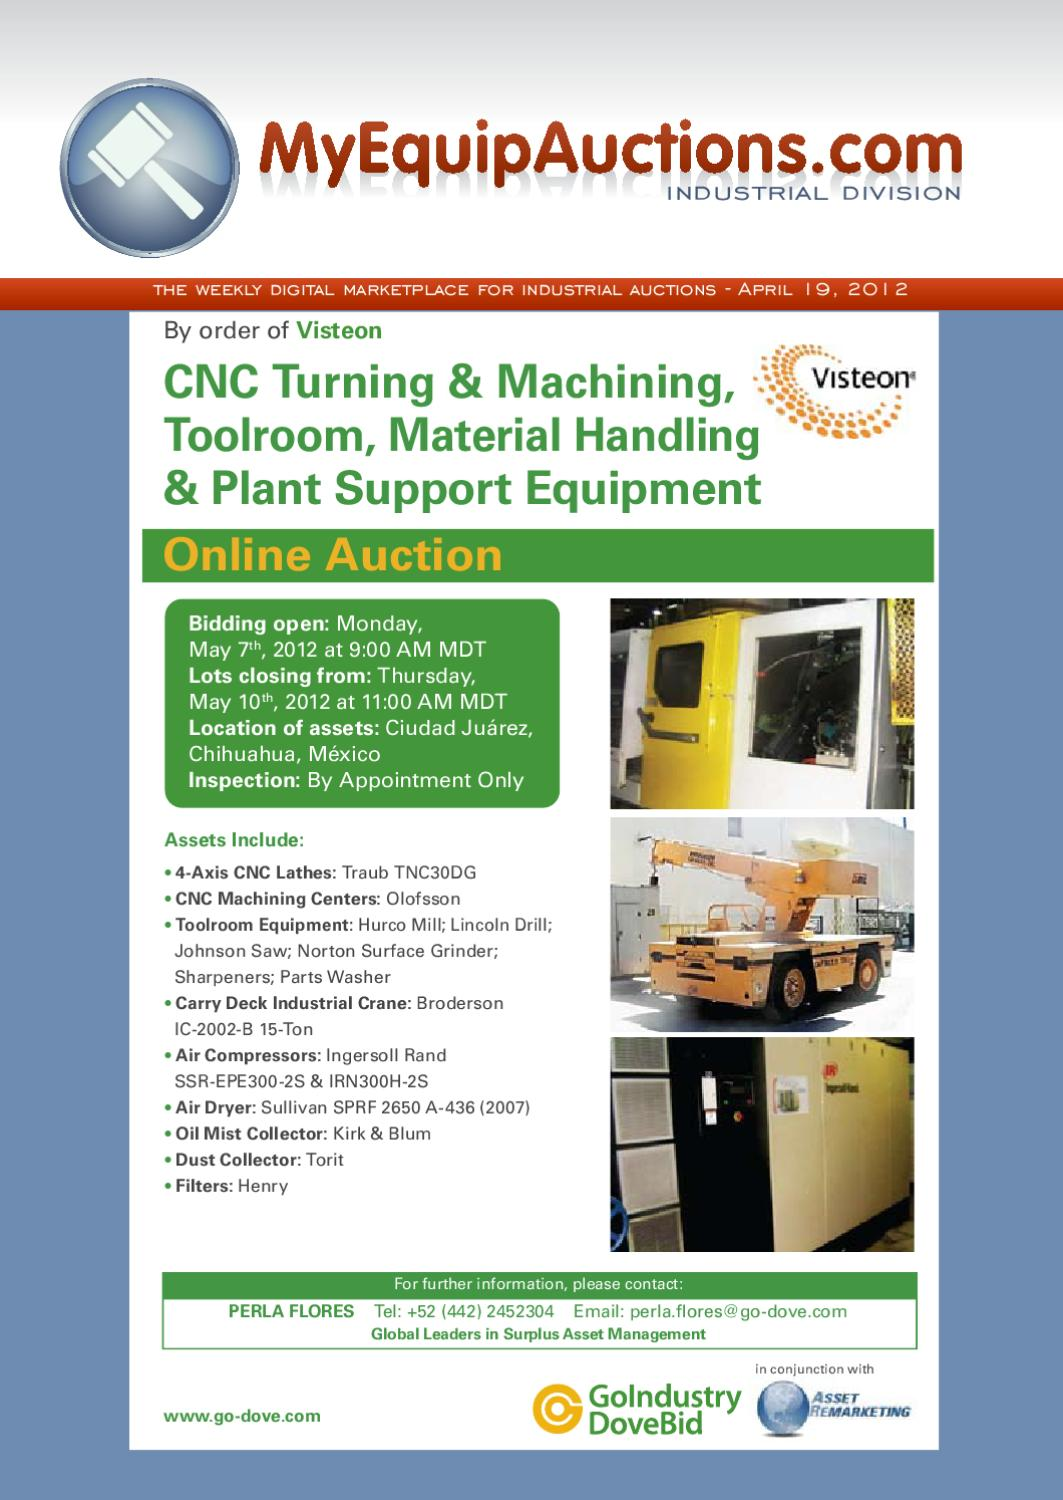 MyEquipAuctions - IMT - 4-19-12 by Heartland Communications